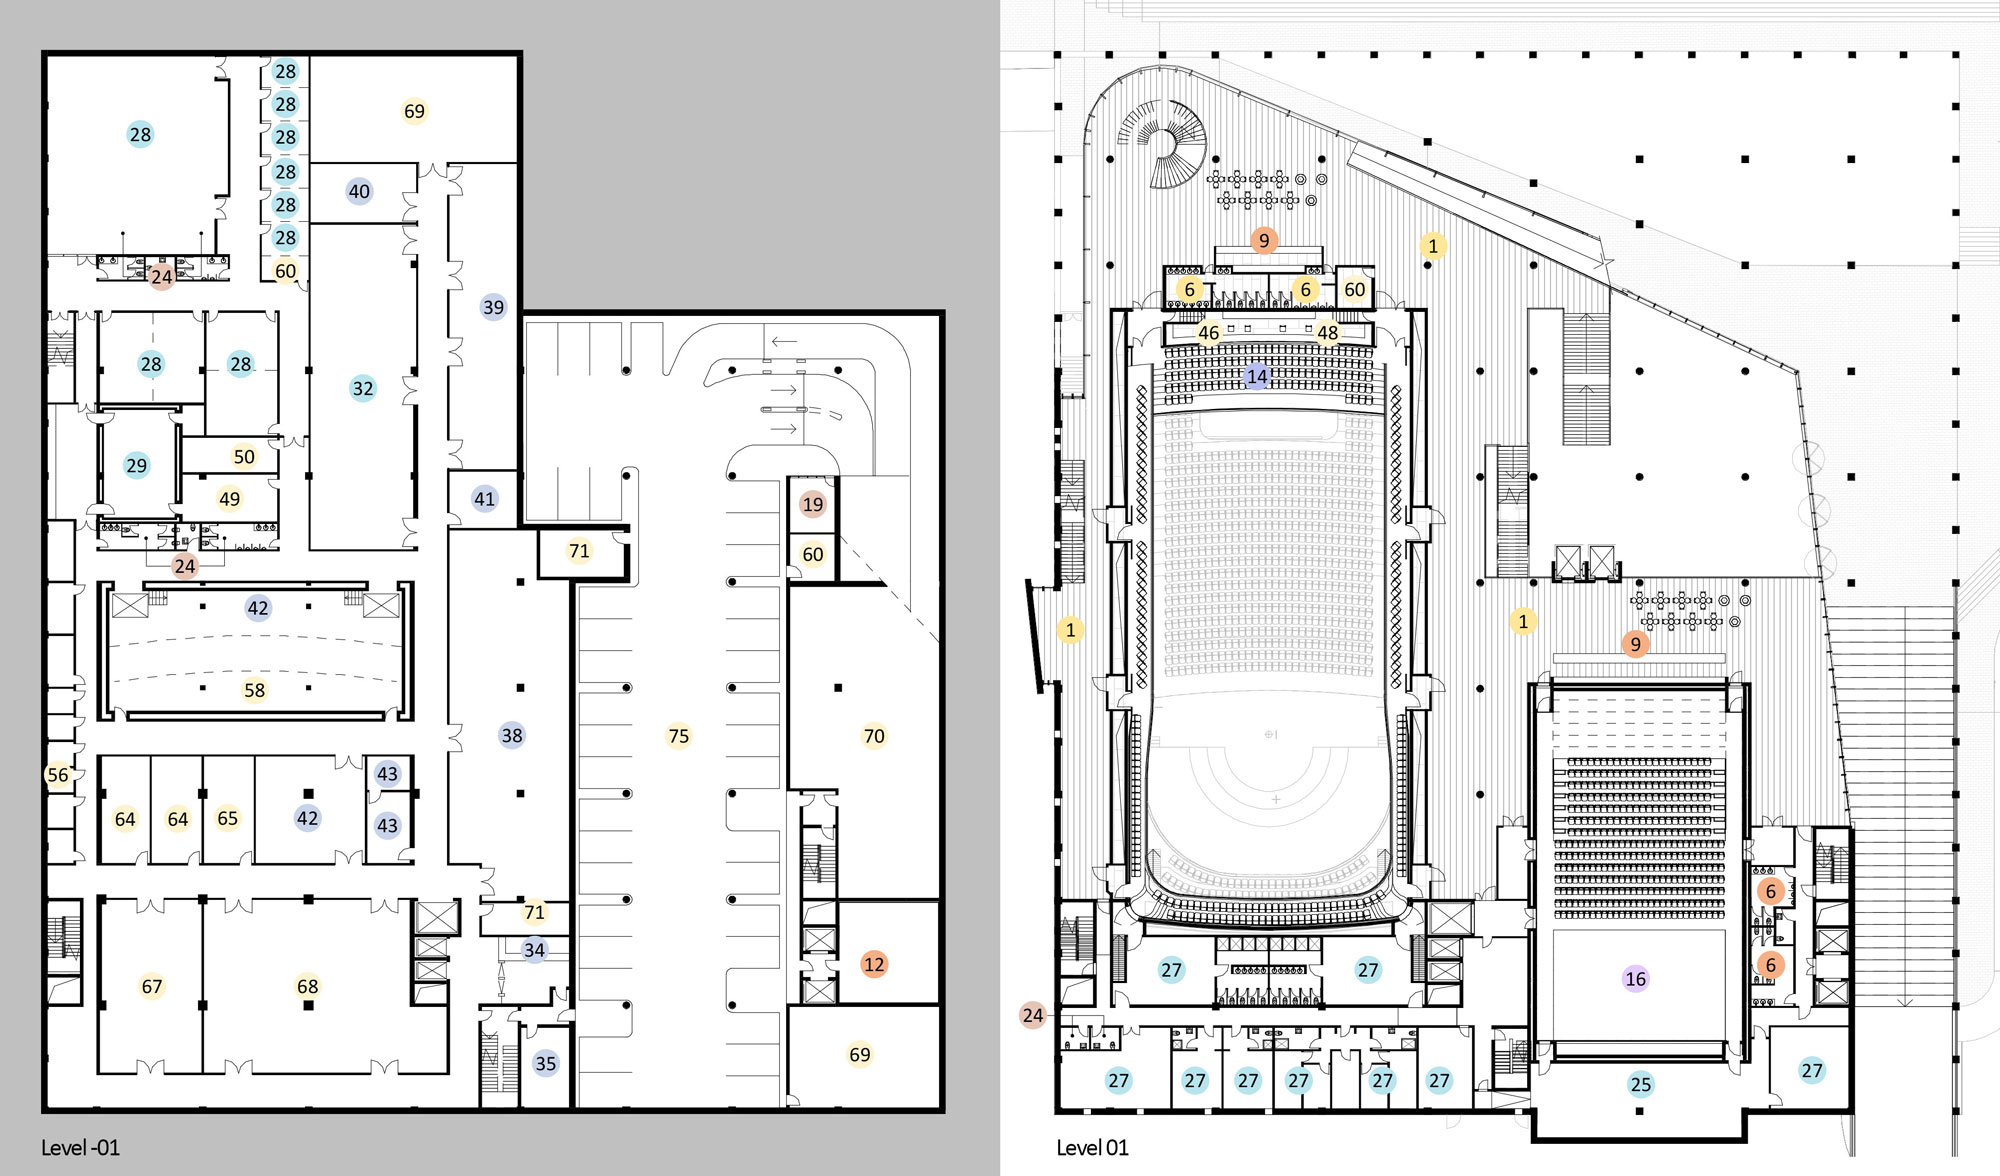 AR_Architecture_National_concert_hall_Sketches&Plans_012